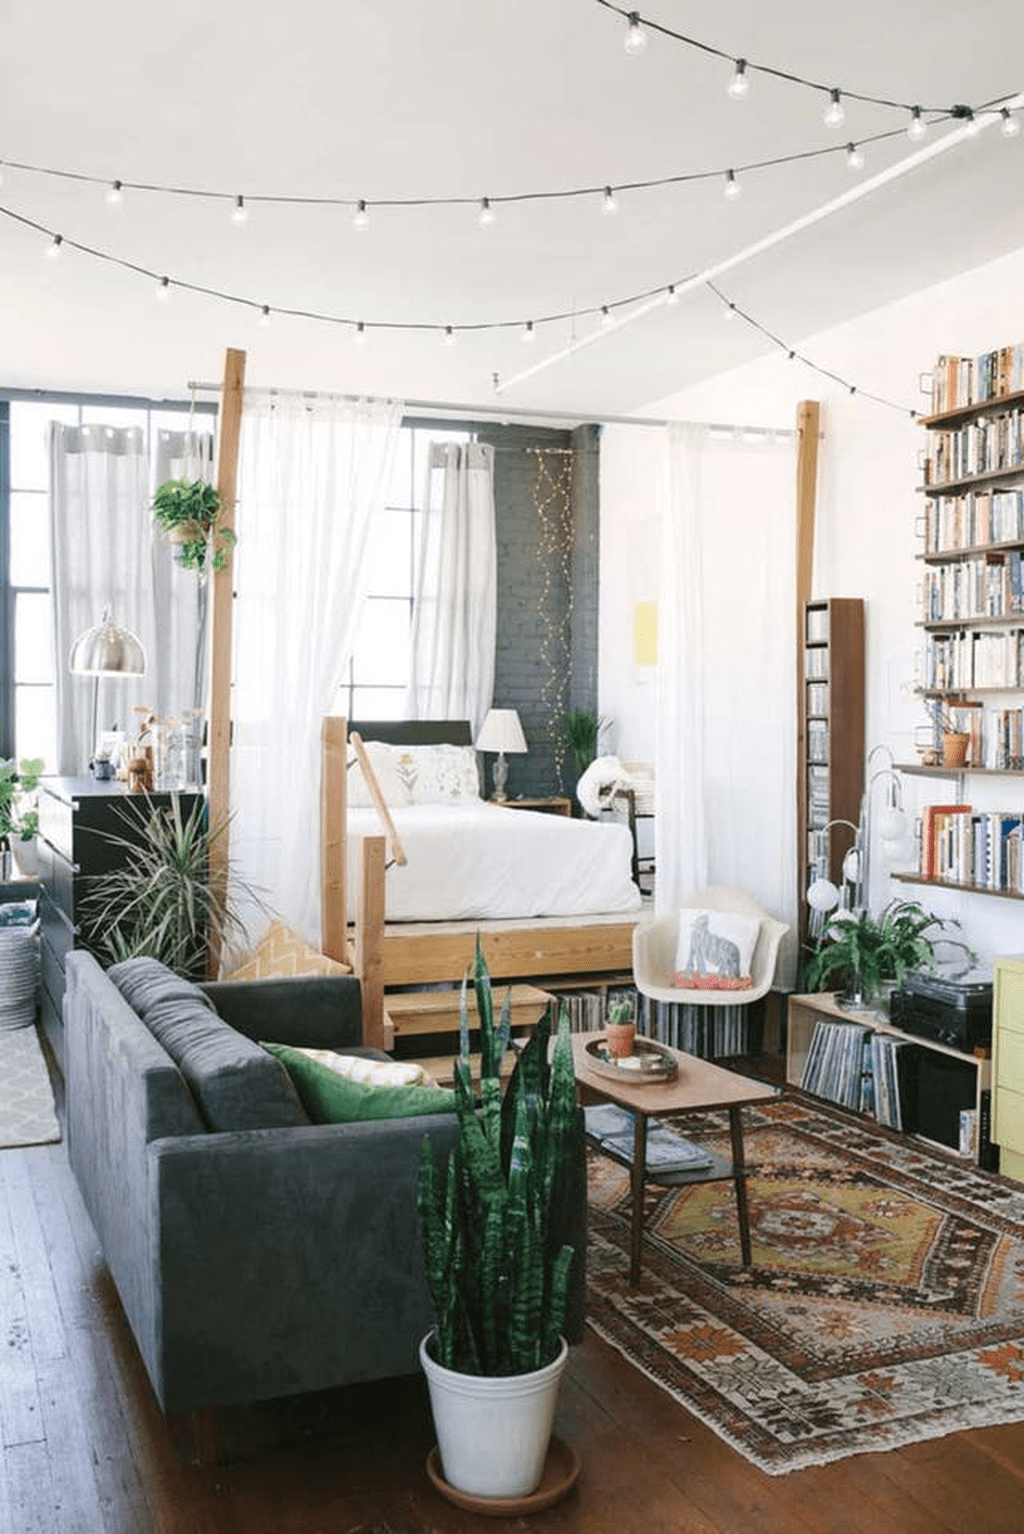 Cool Studio Apartment Ideas You Never Seen Before 01